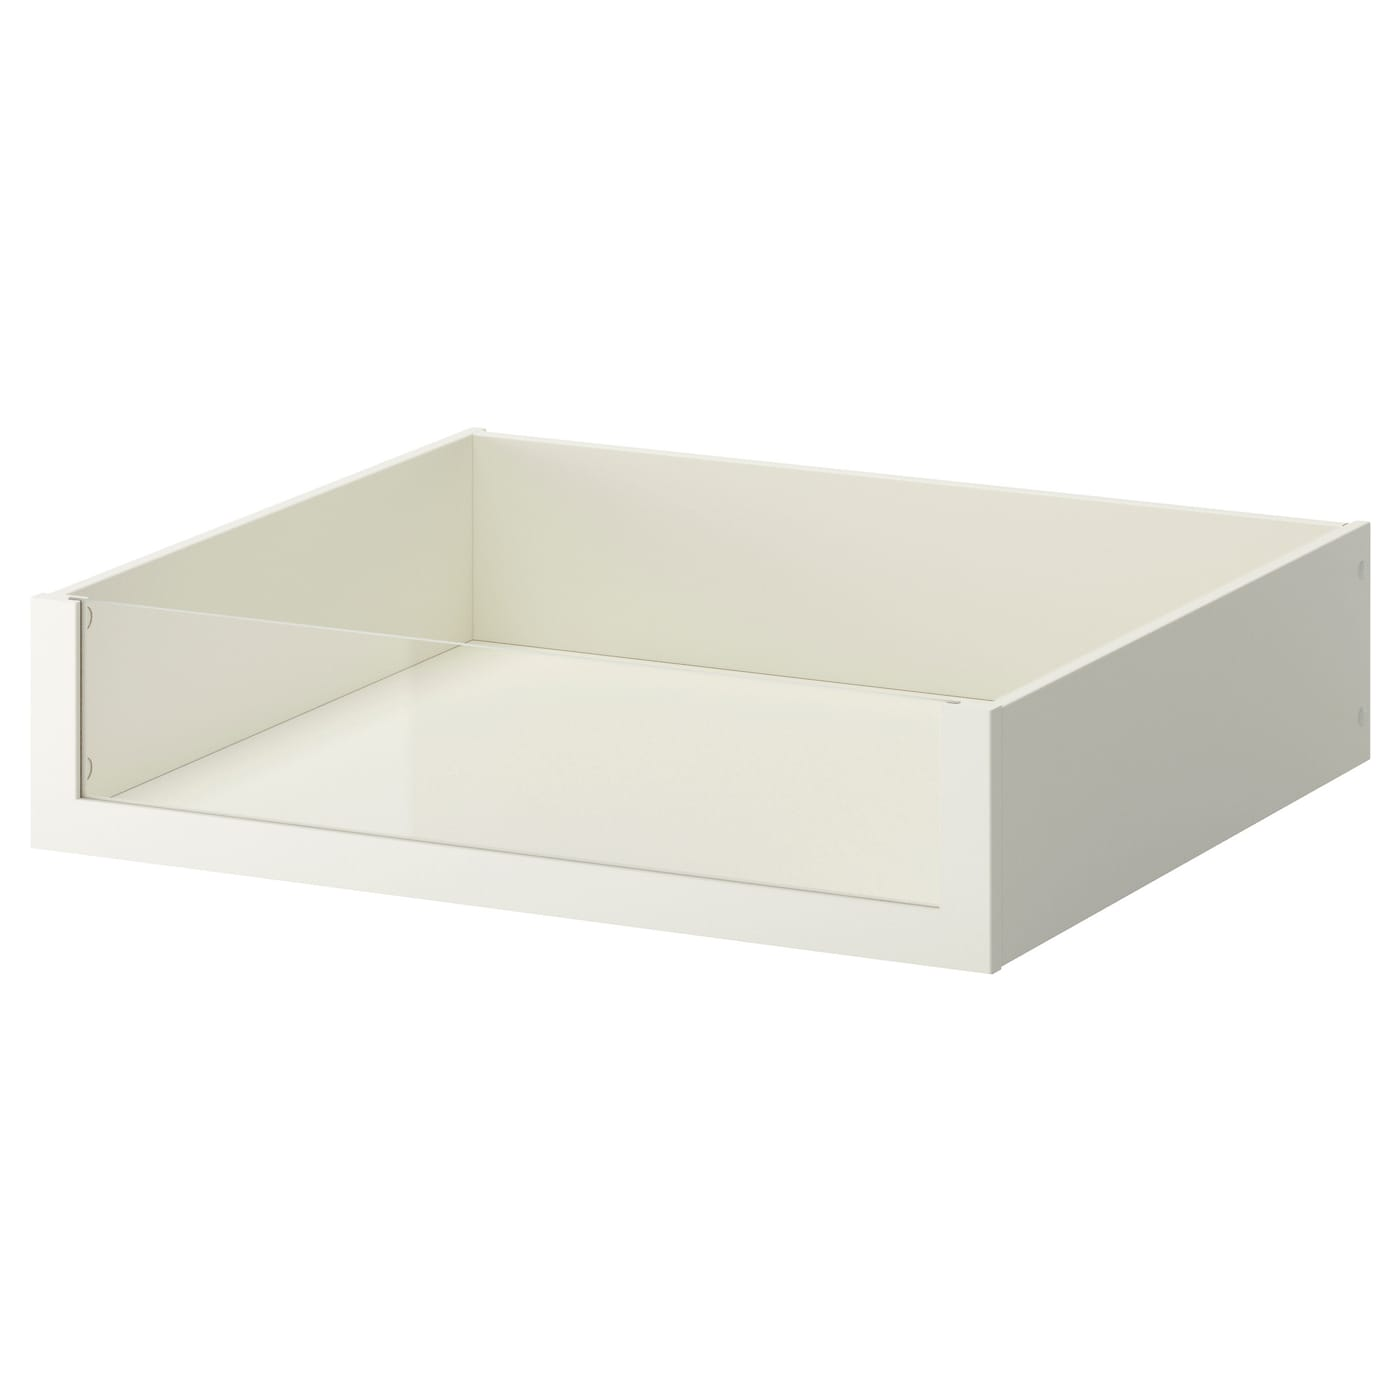 komplement drawer with glass front white 75 x 58 cm ikea. Black Bedroom Furniture Sets. Home Design Ideas